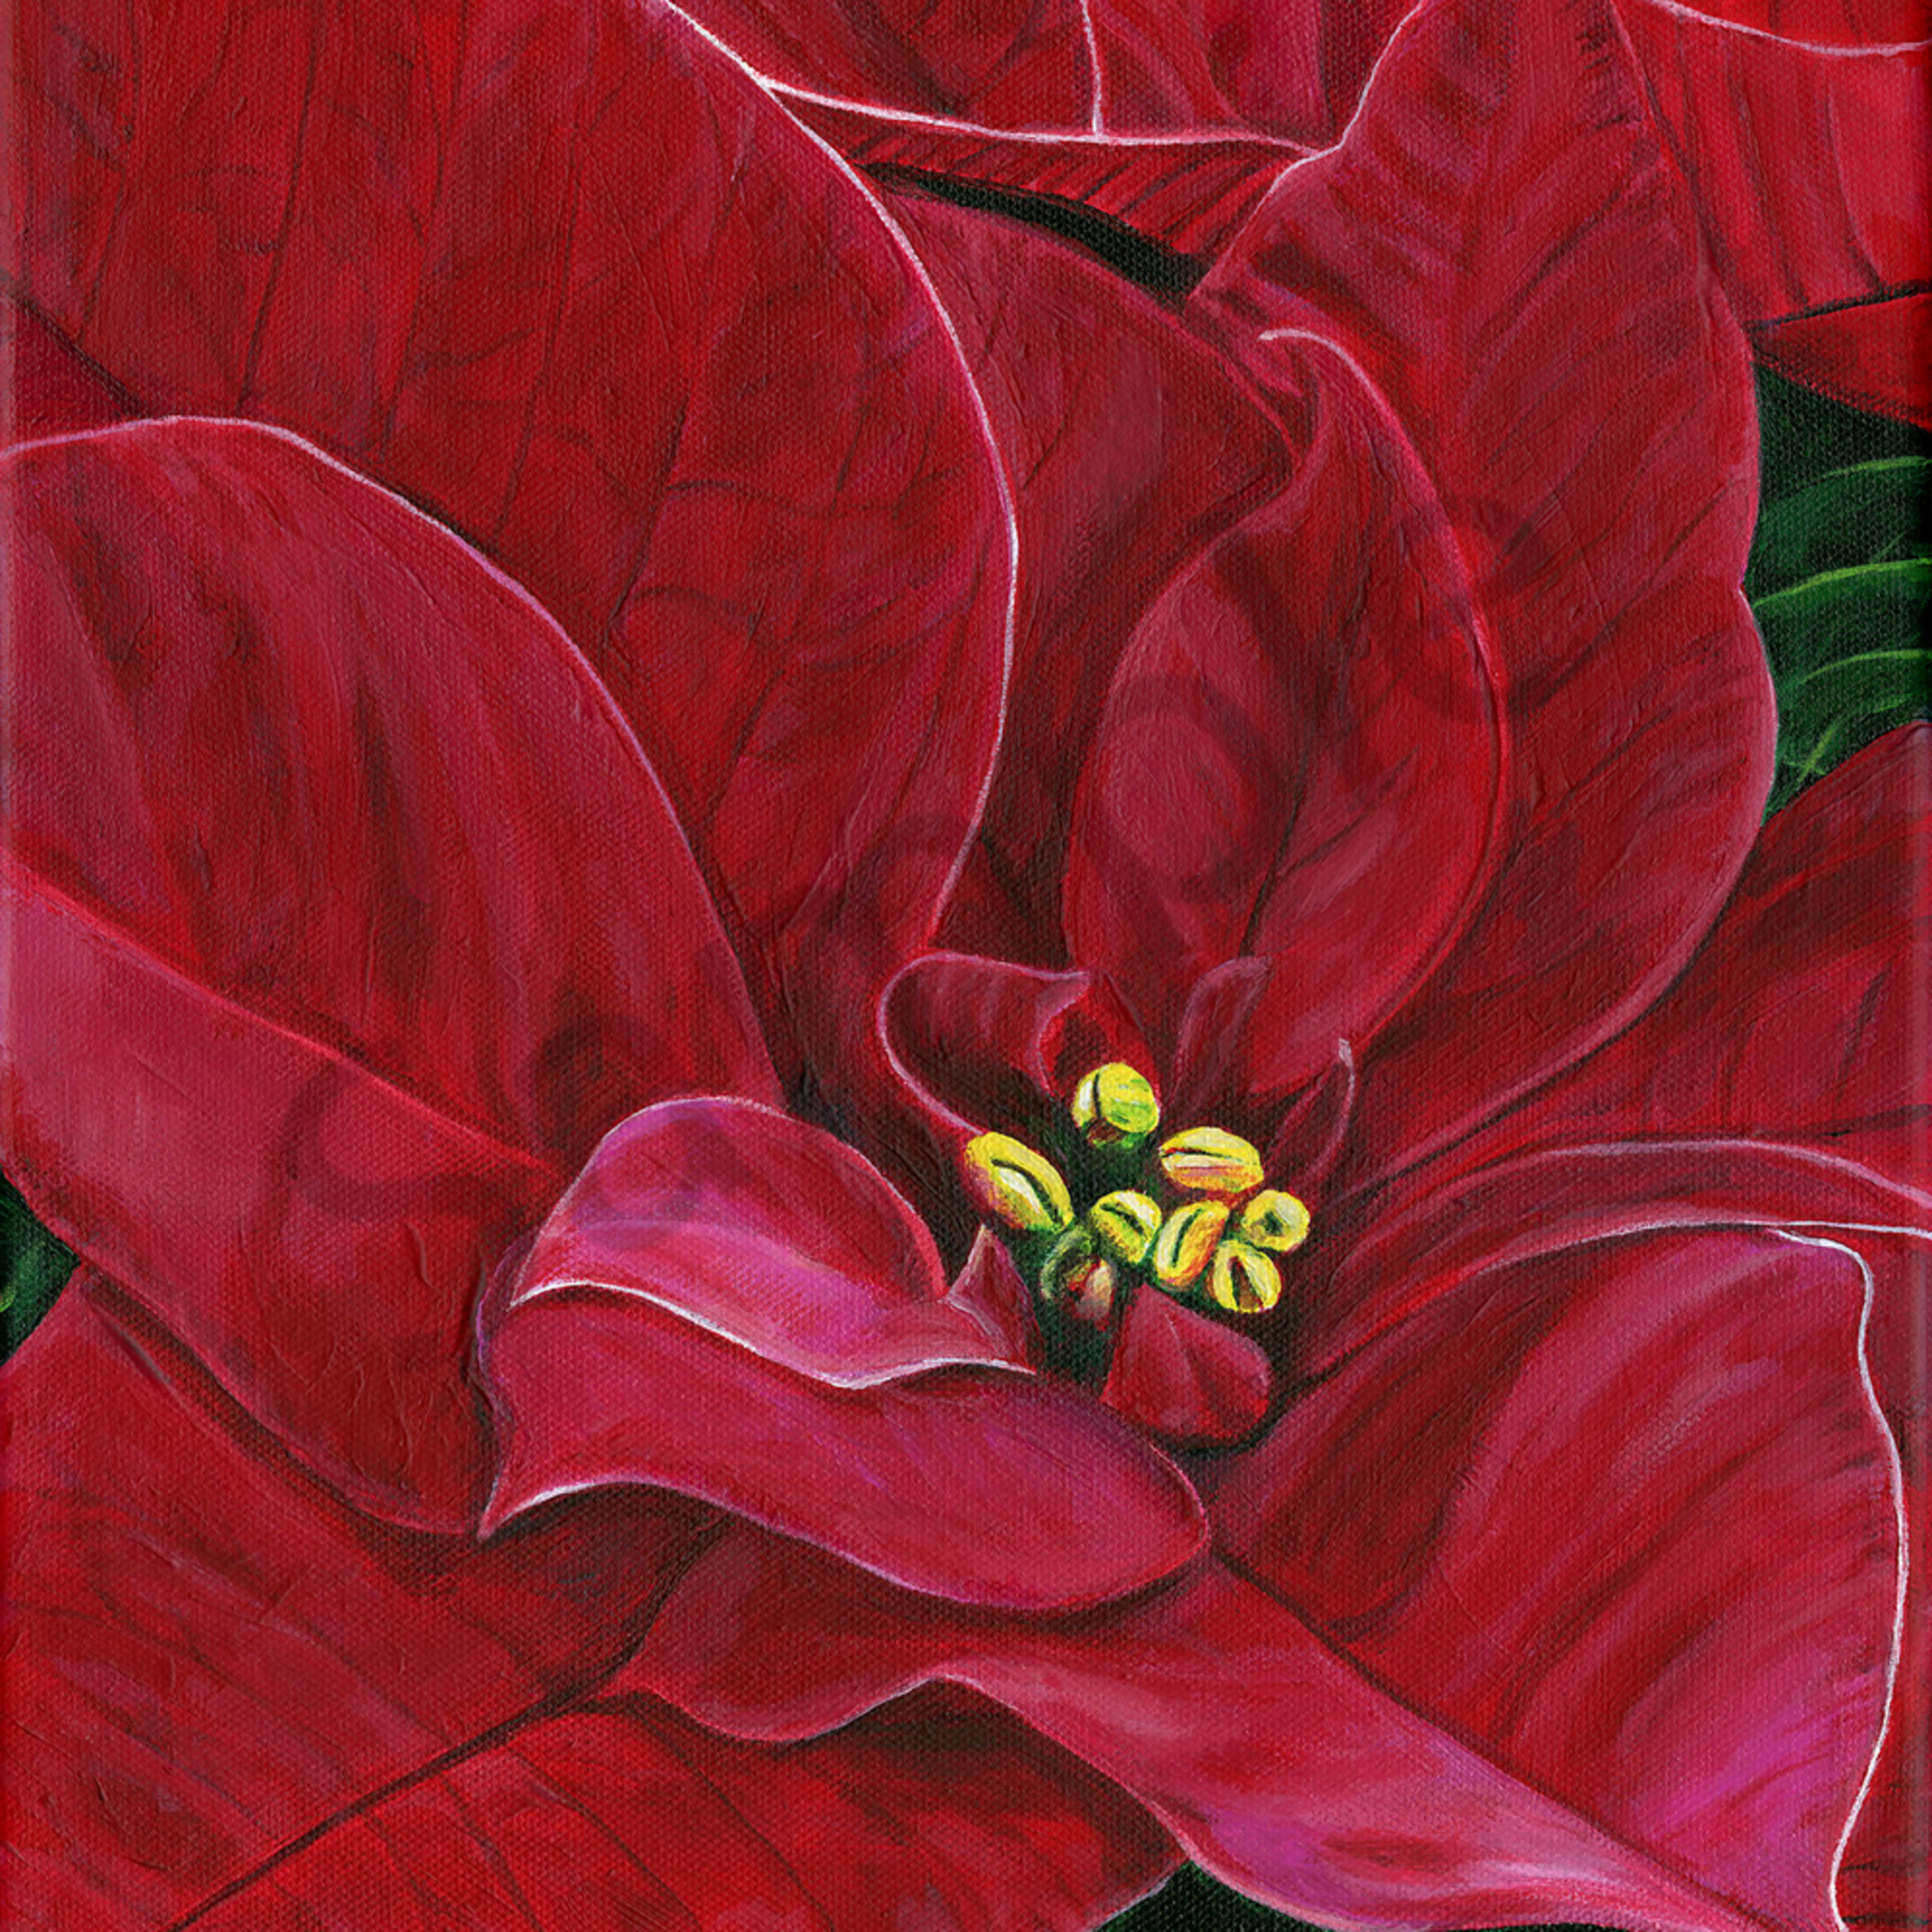 Poinsettia passion 400 jf73wg